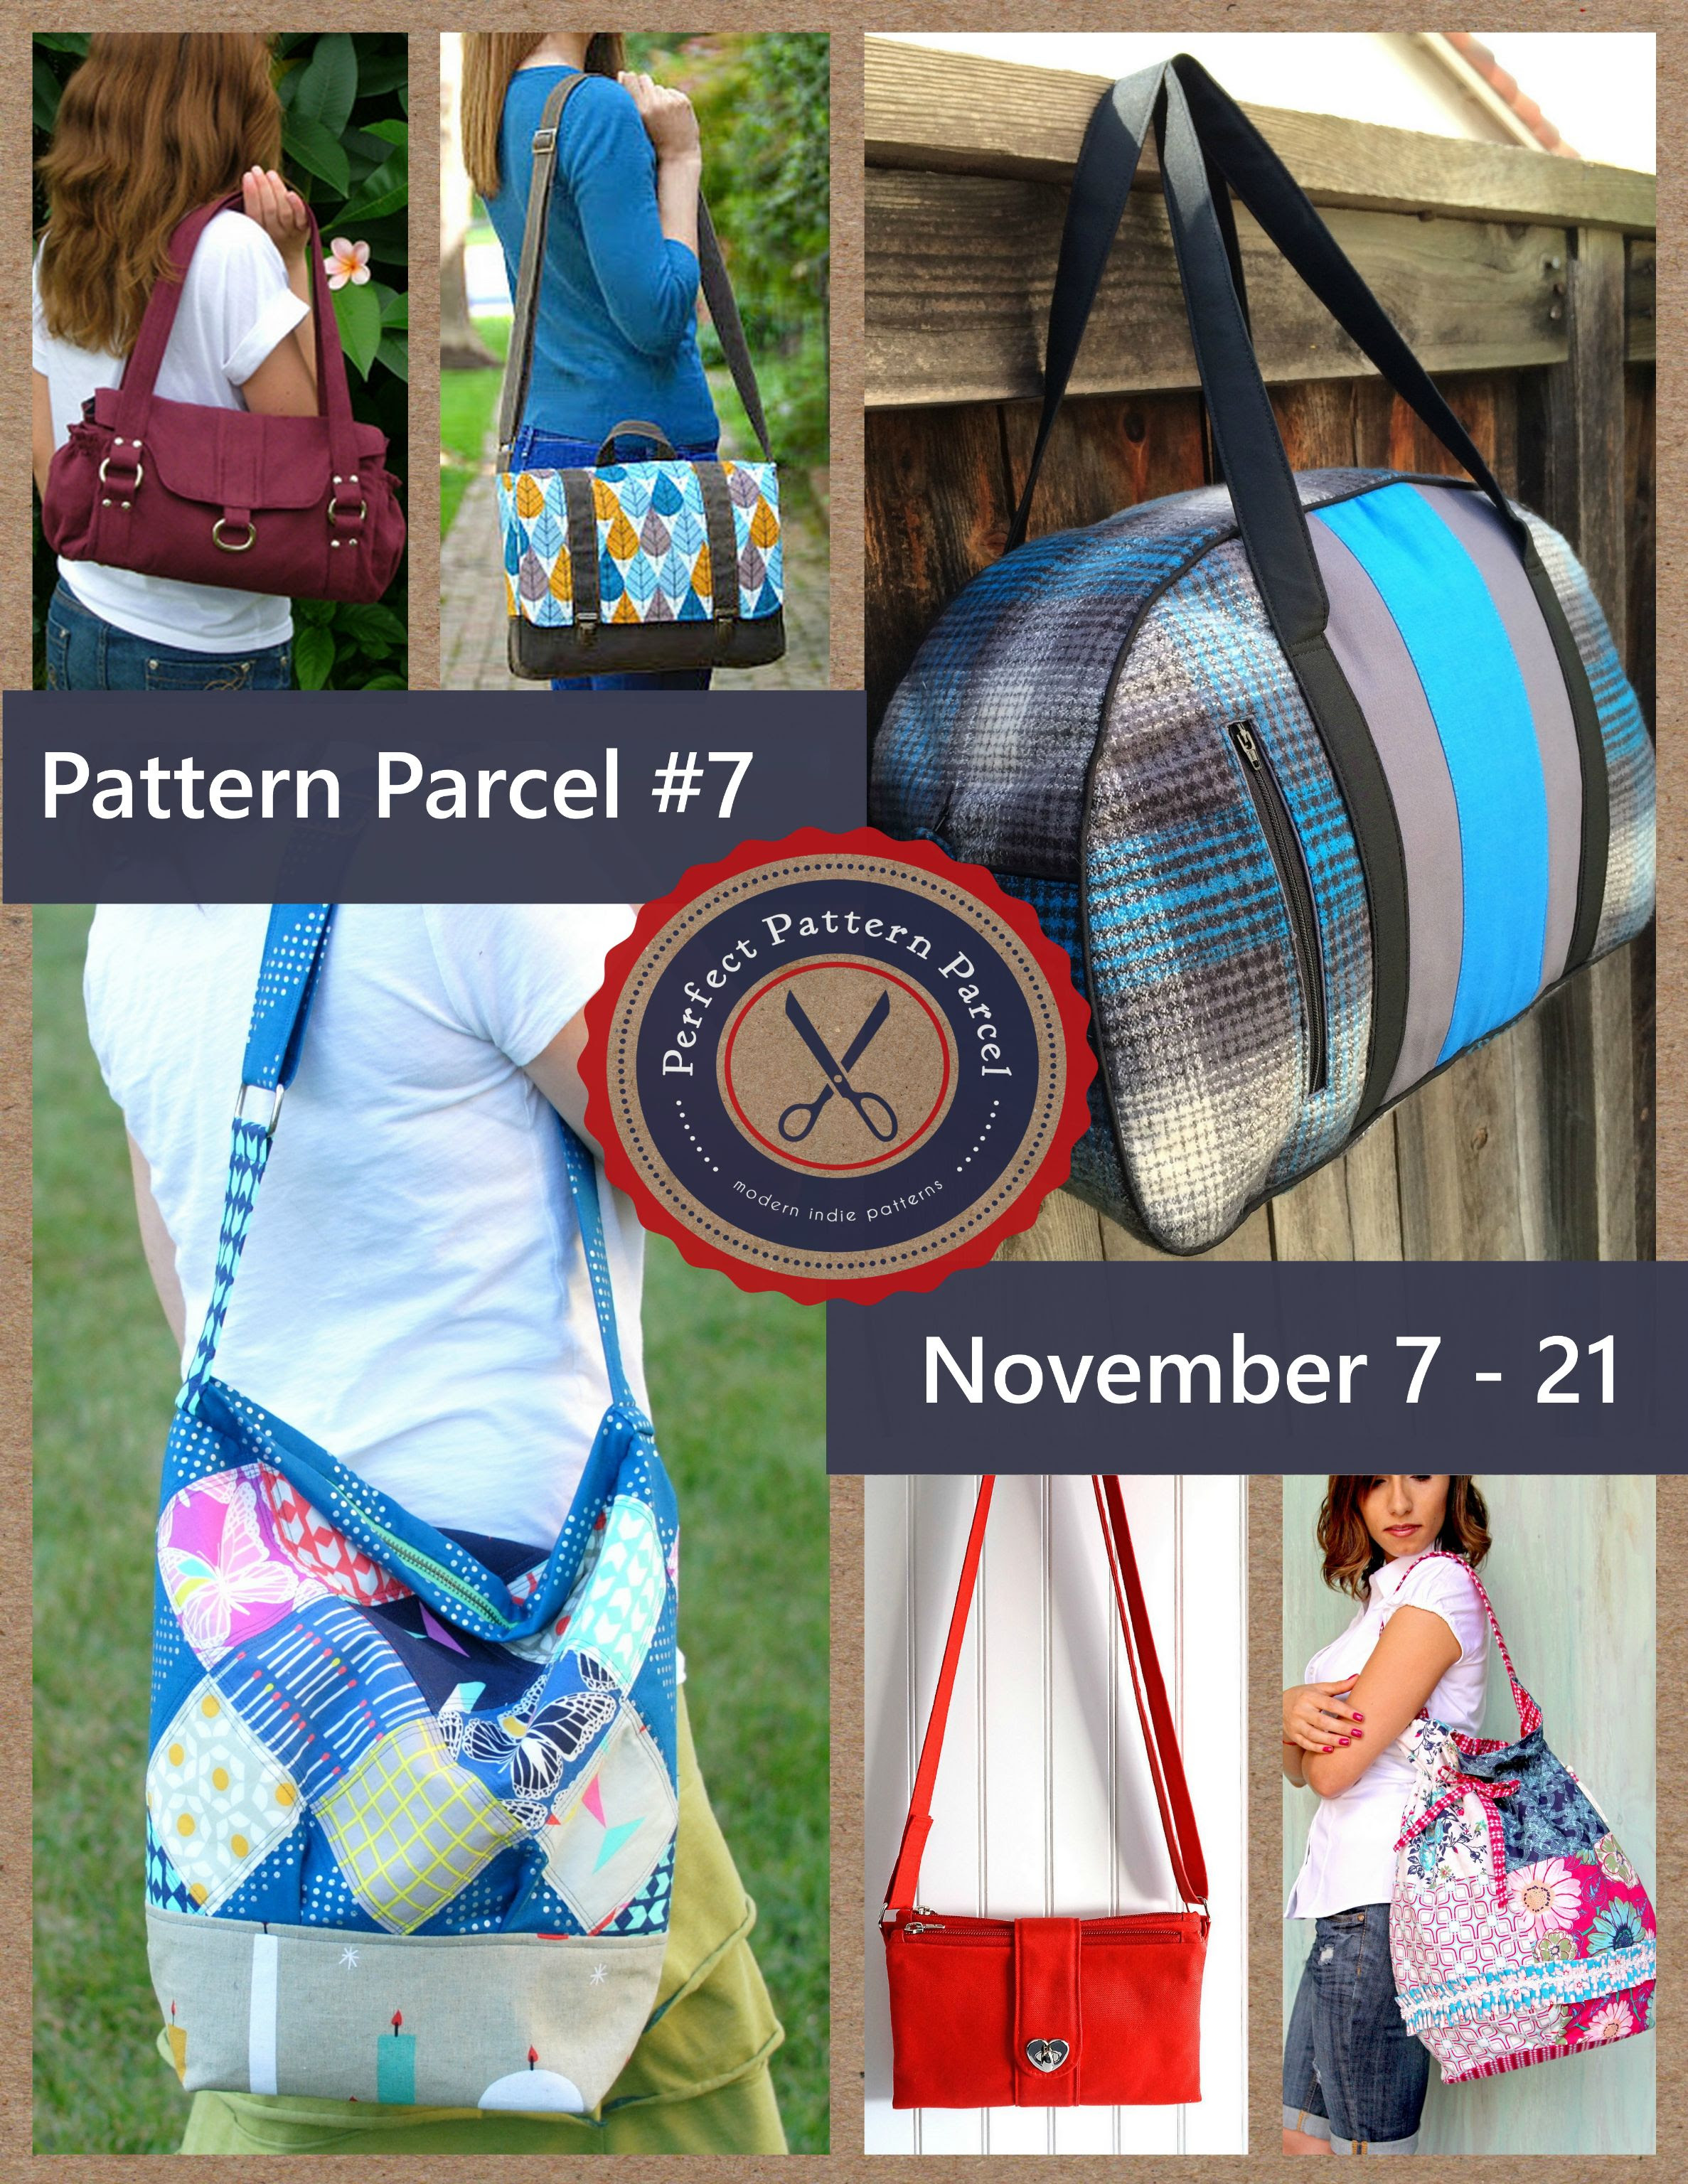 Pattern Parcel #7: Choose your own price and support DonorsChoose. Win/win!